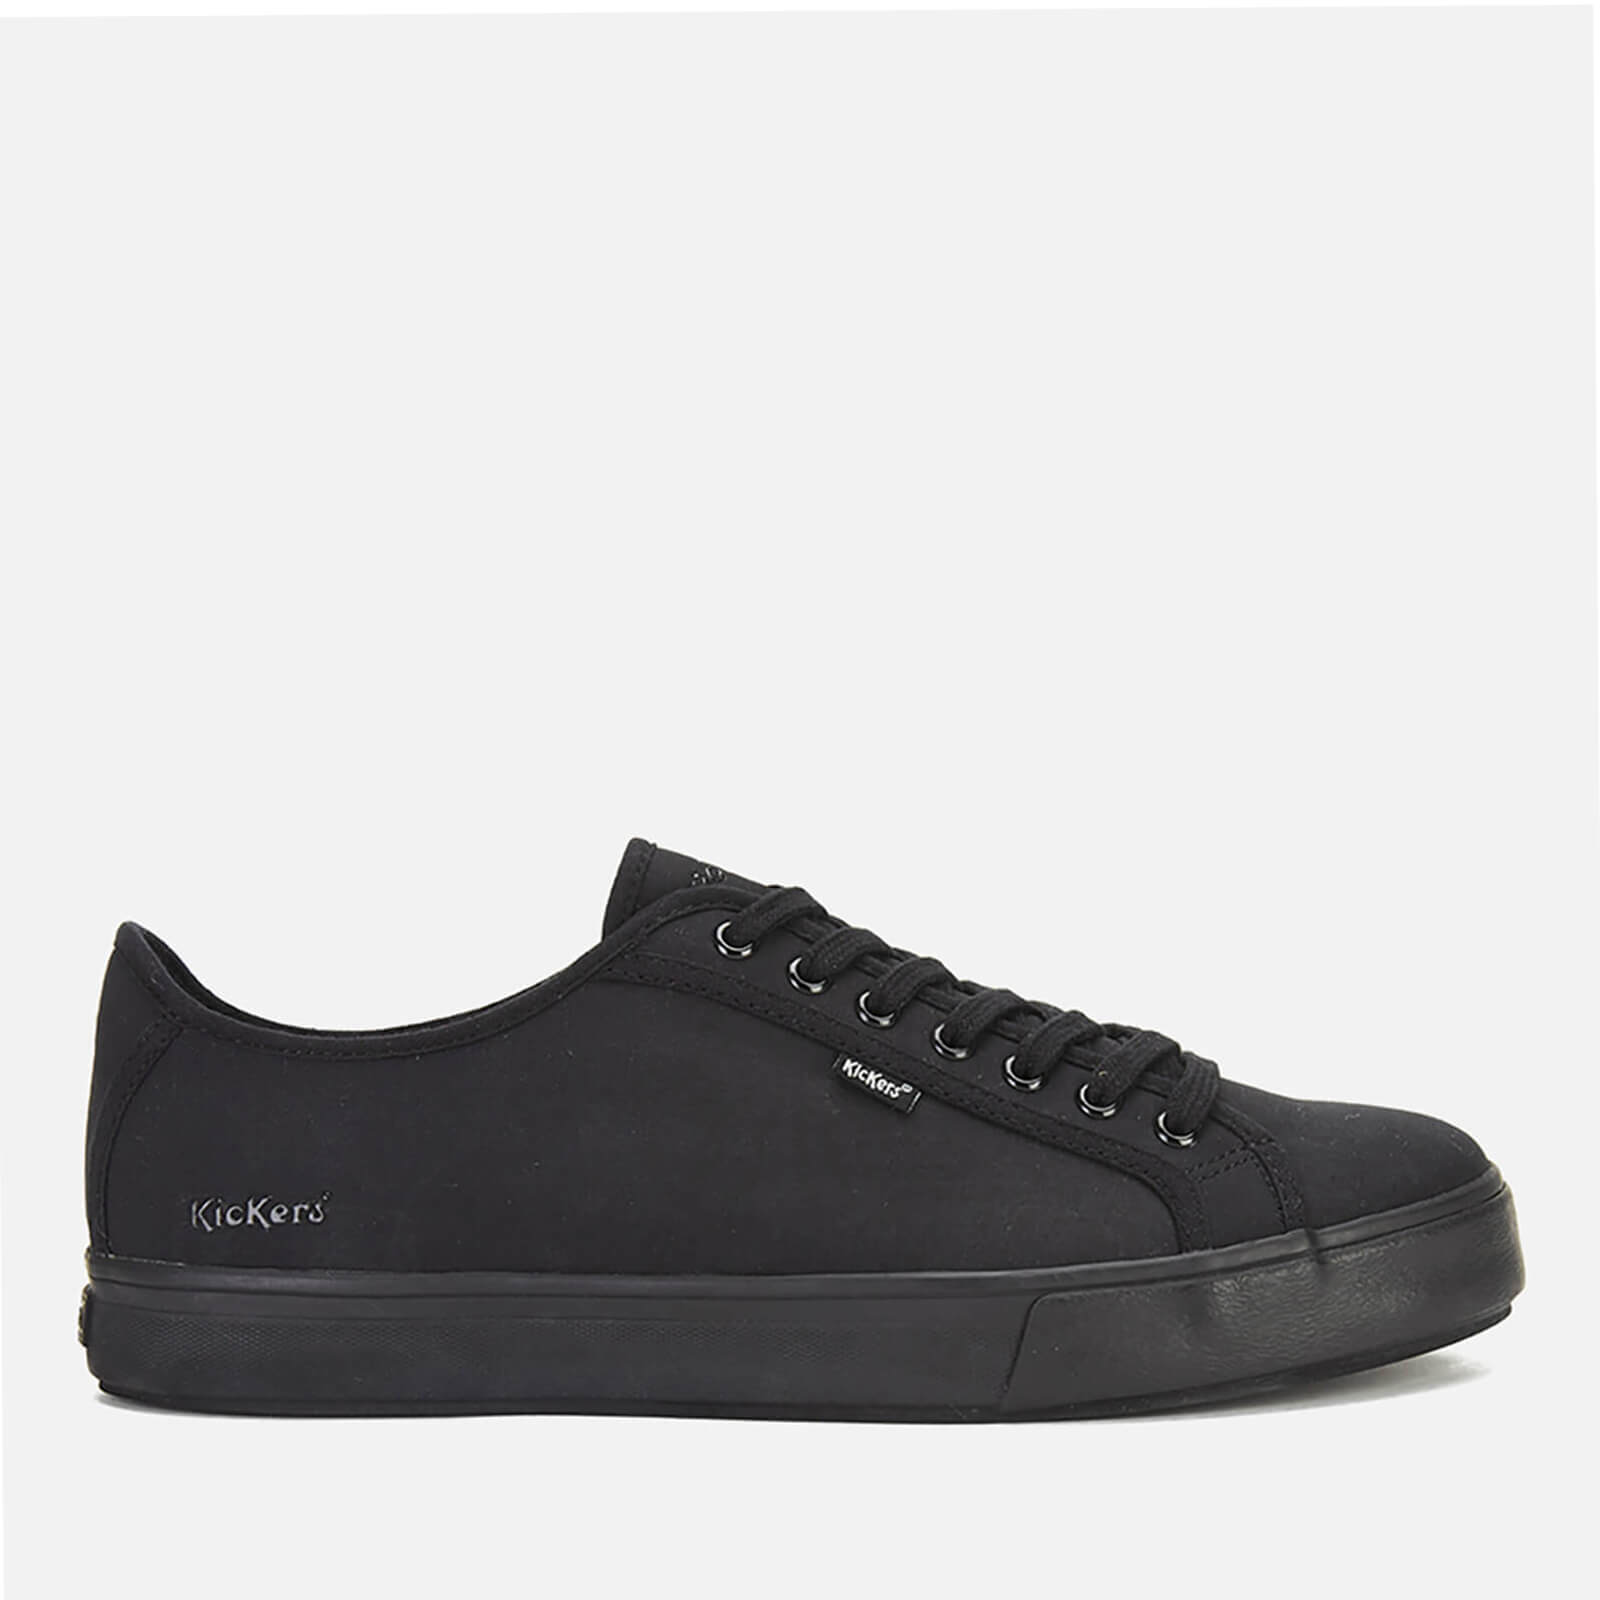 Chaussures Tennis Homme Kickers Tovni - Noir